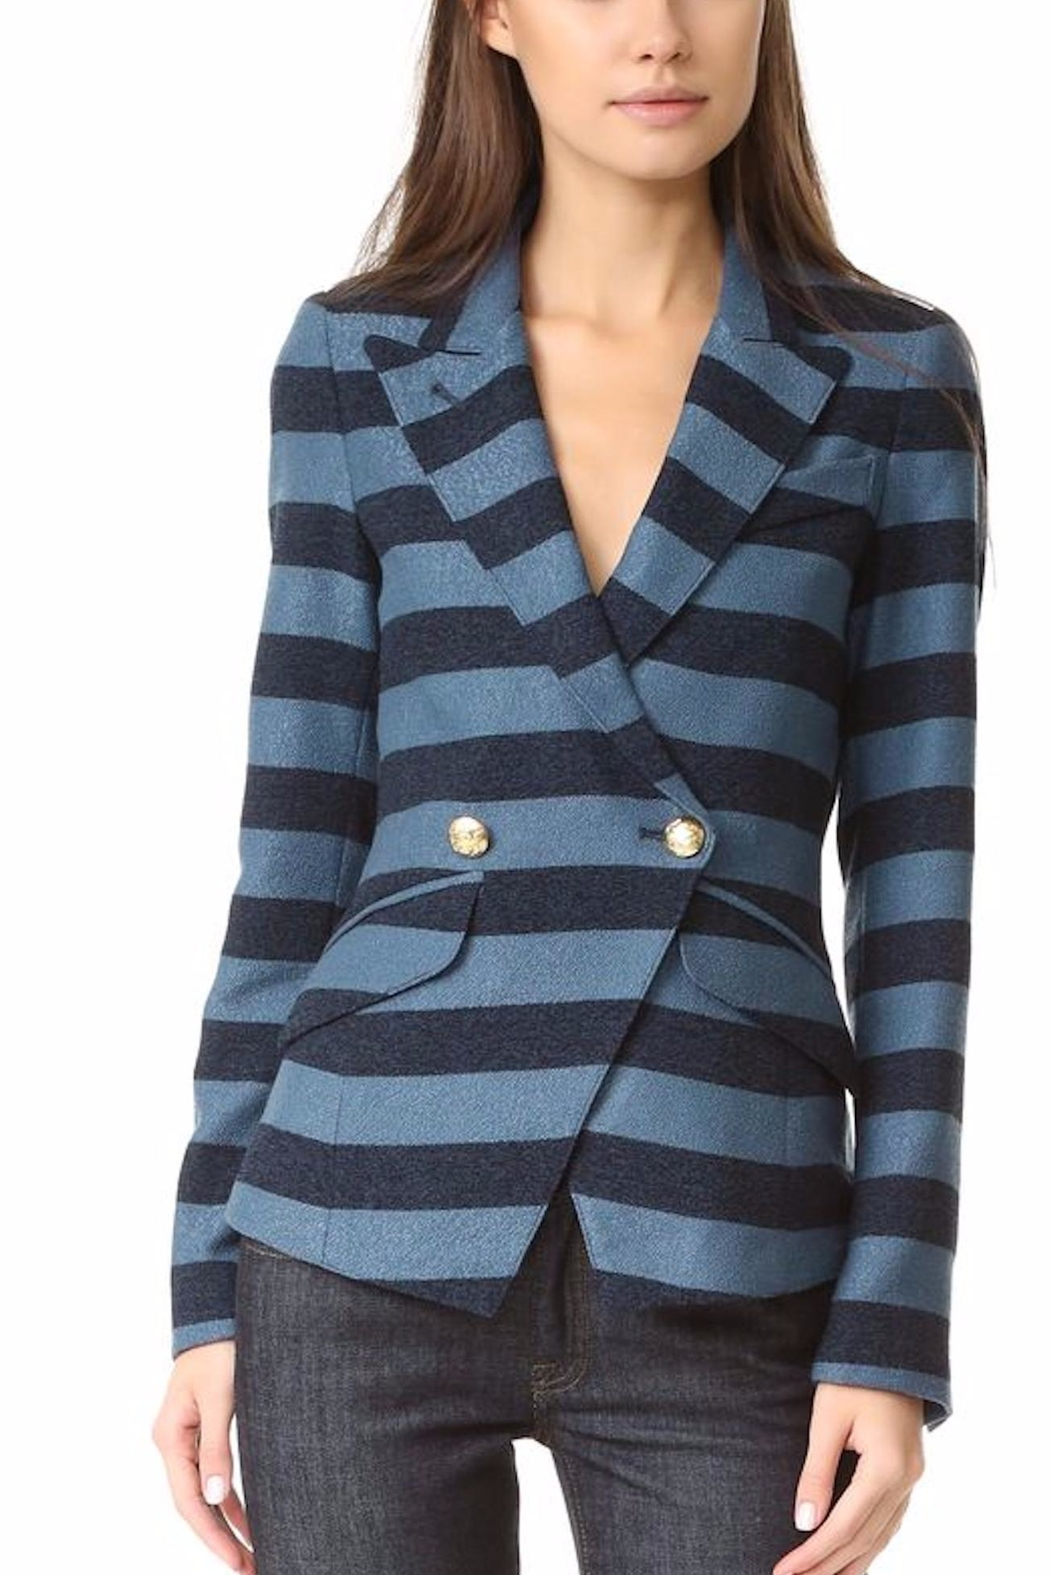 Smythe Blue Striped Blazer - Main Image